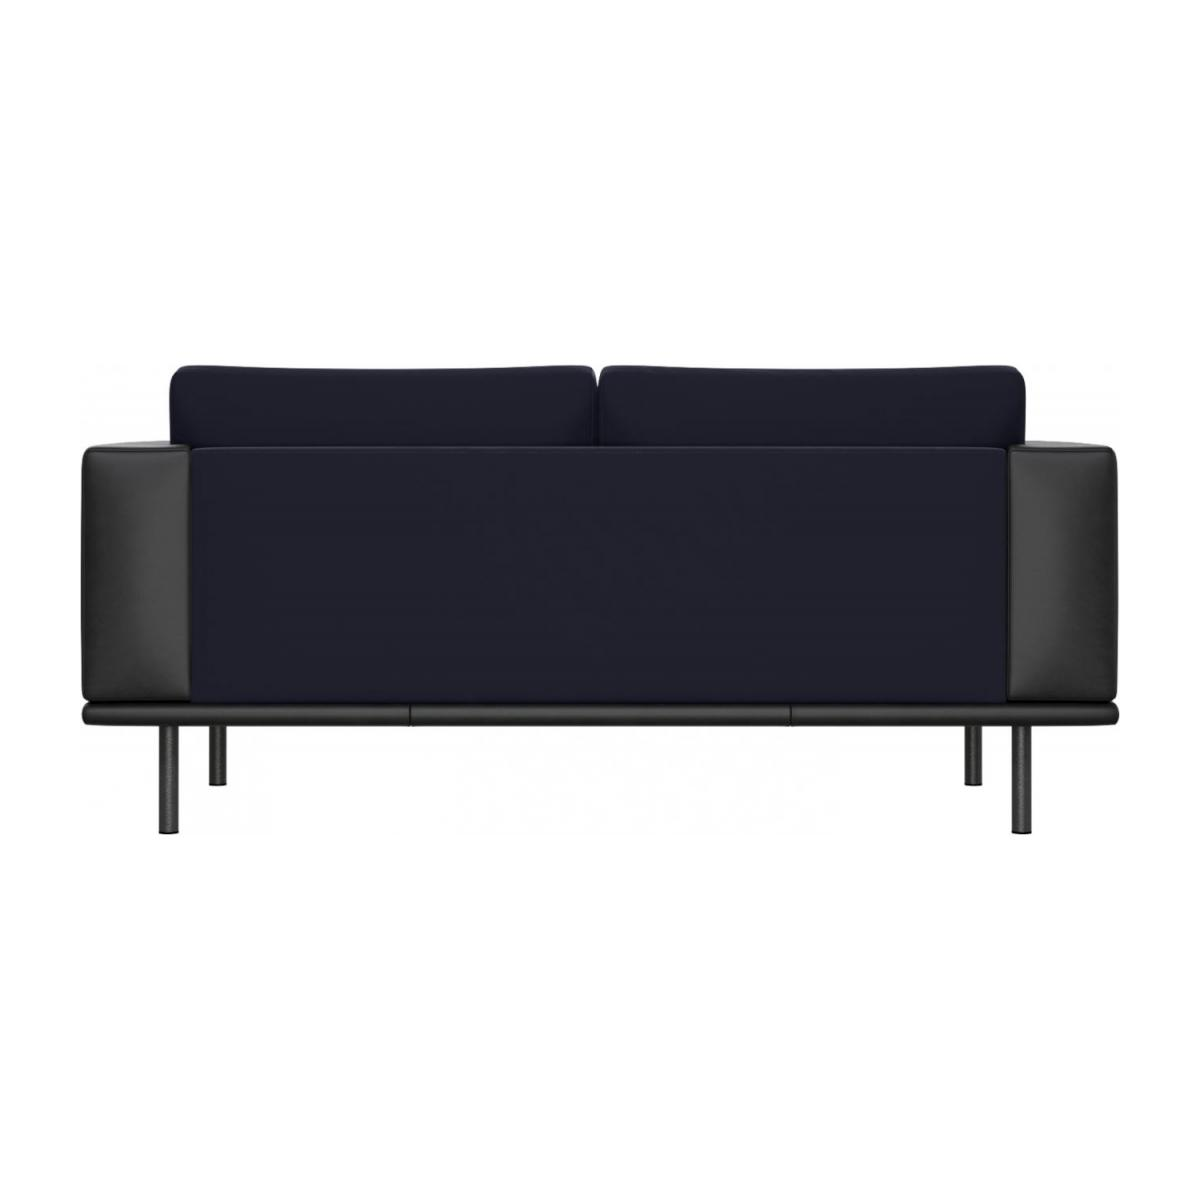 2 seater sofa in Super Velvet fabric, dark blue with base and armrests in black leather n°3